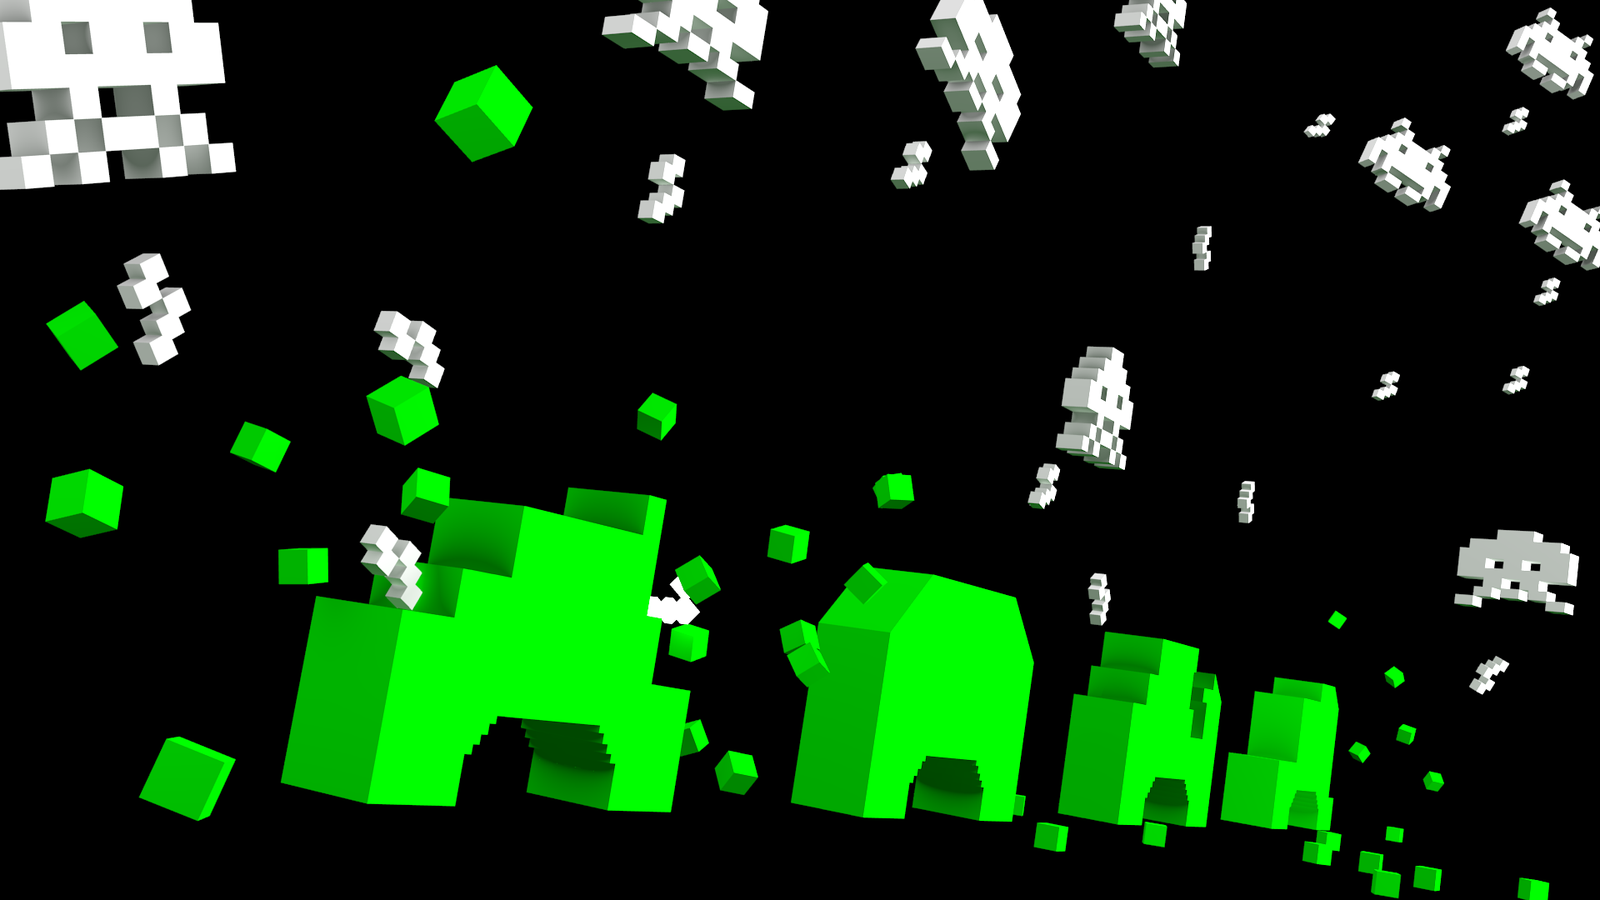 Space Invaders Attack By Tangooscarmik3 D3dnt59 Png 1600 900 Space Invaders Wallpaper Free Wallpaper